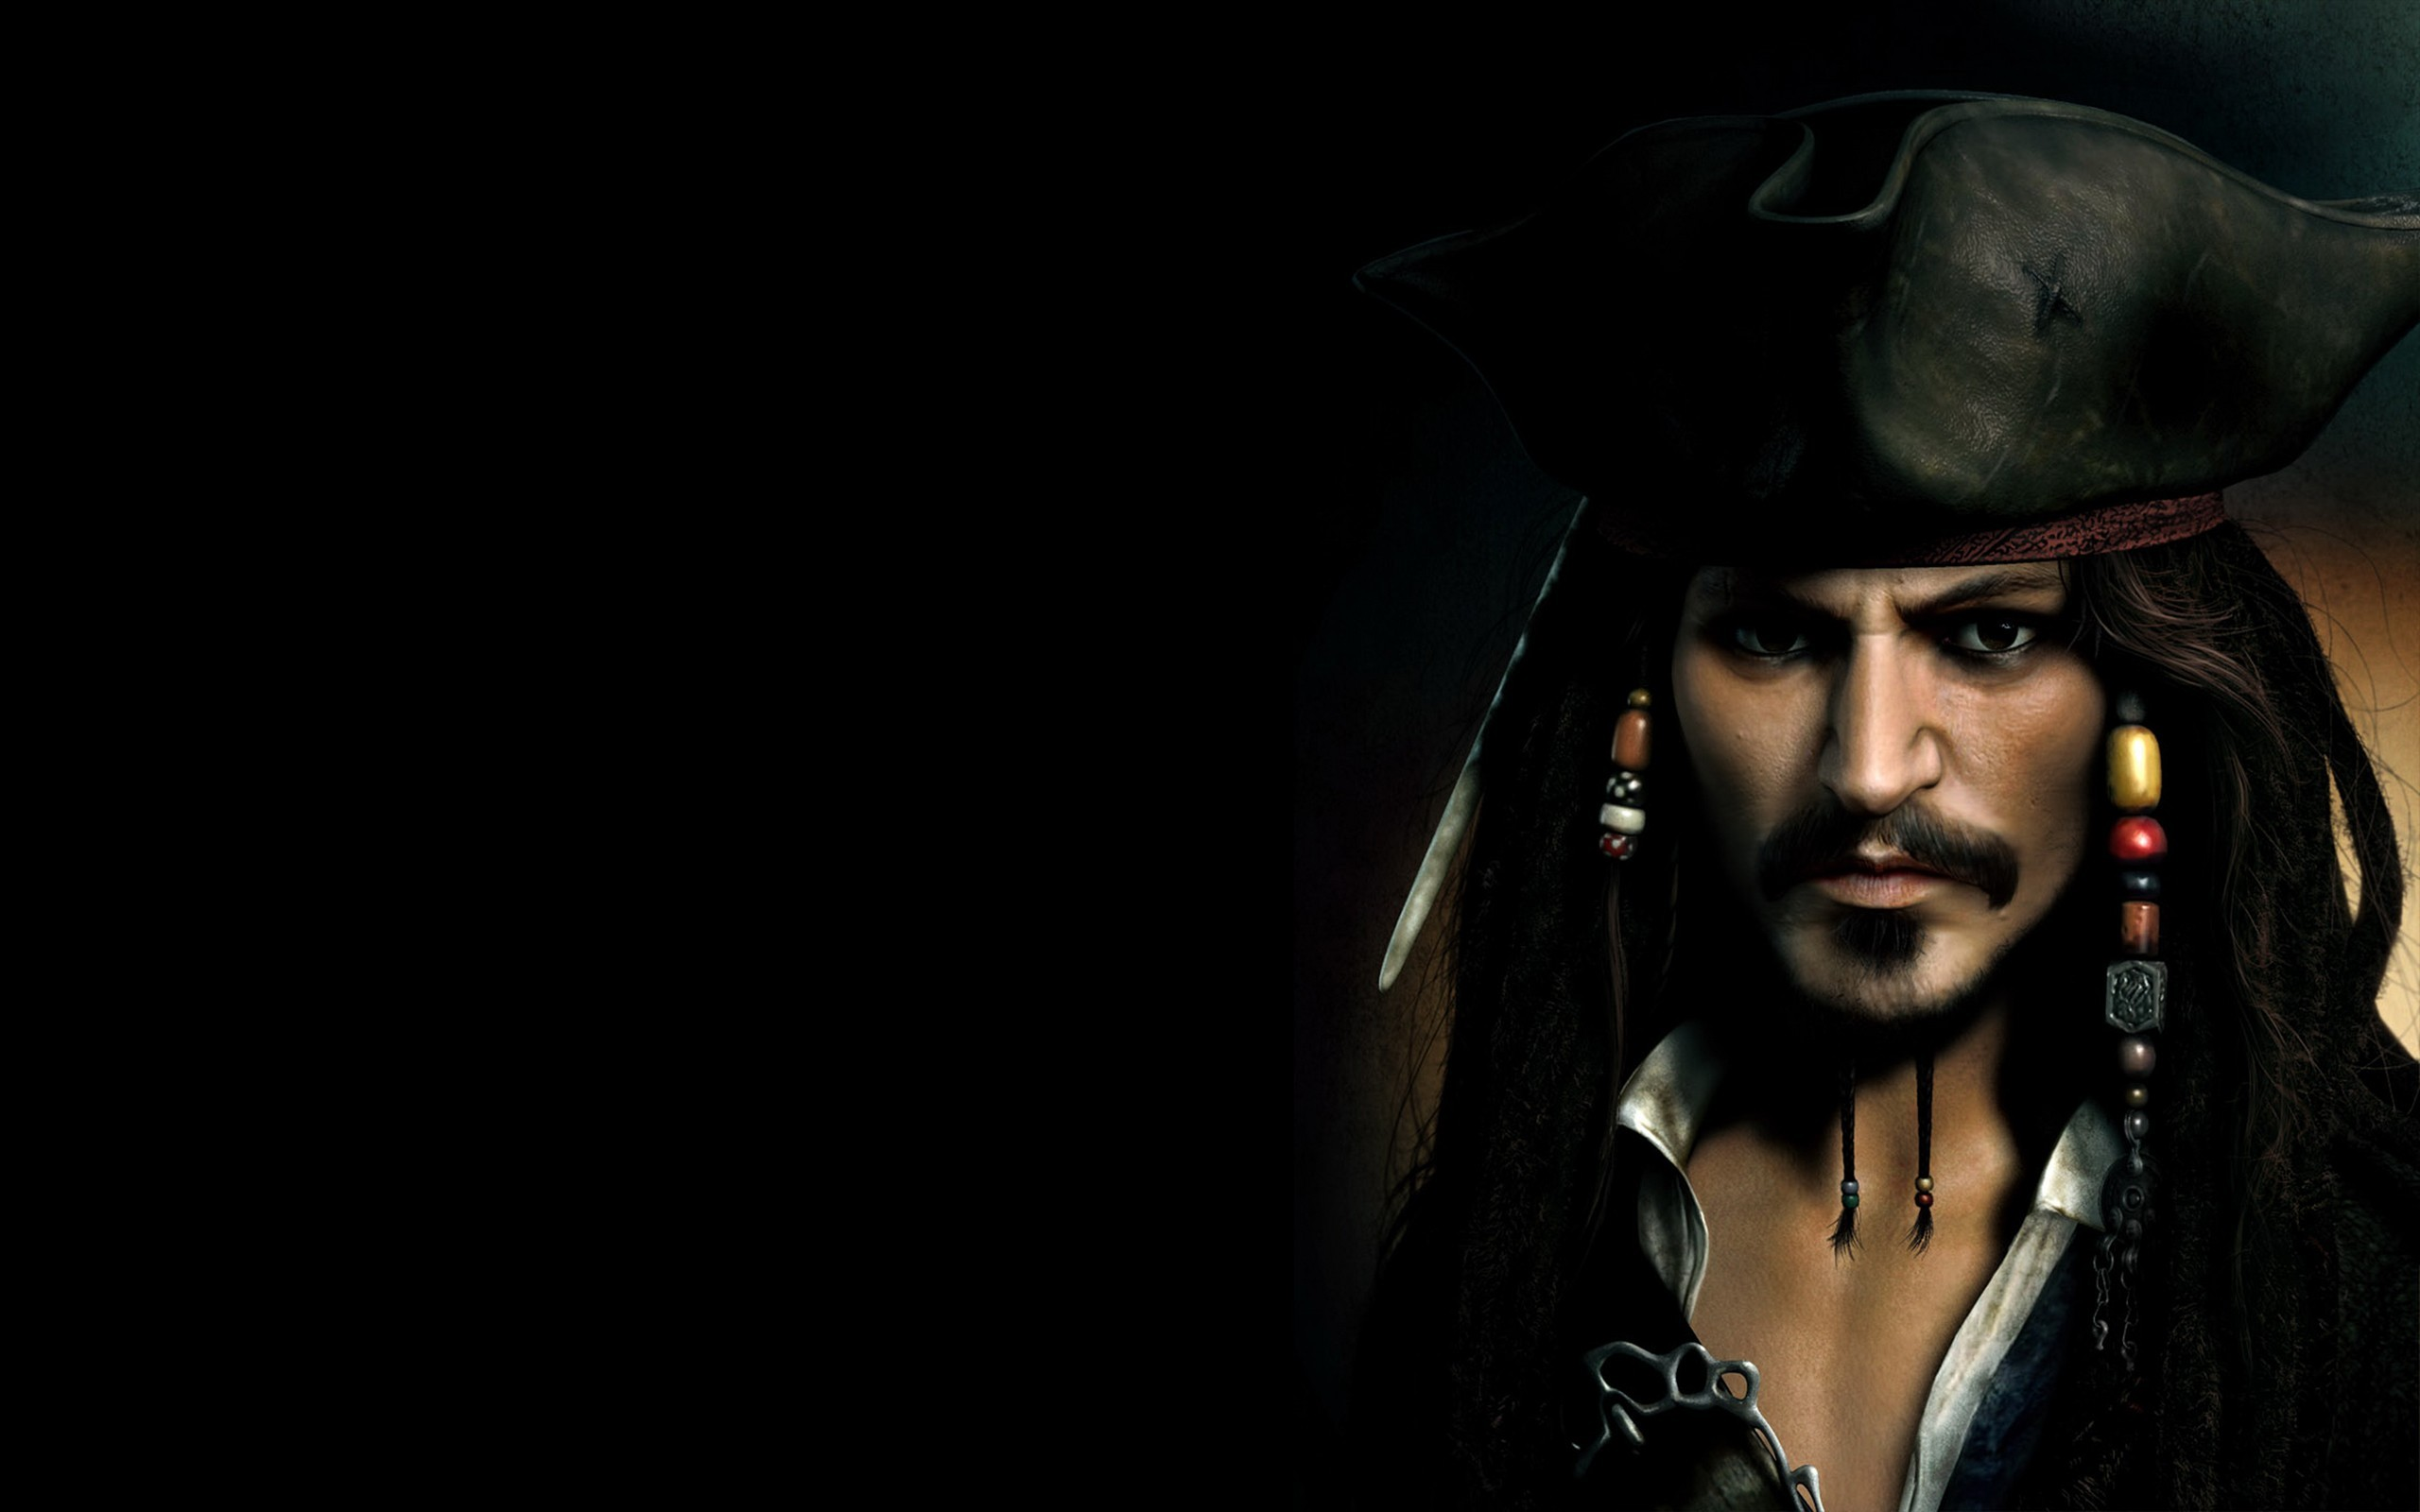 jack sparrow, hd movies, 4k wallpapers, images, backgrounds, photos